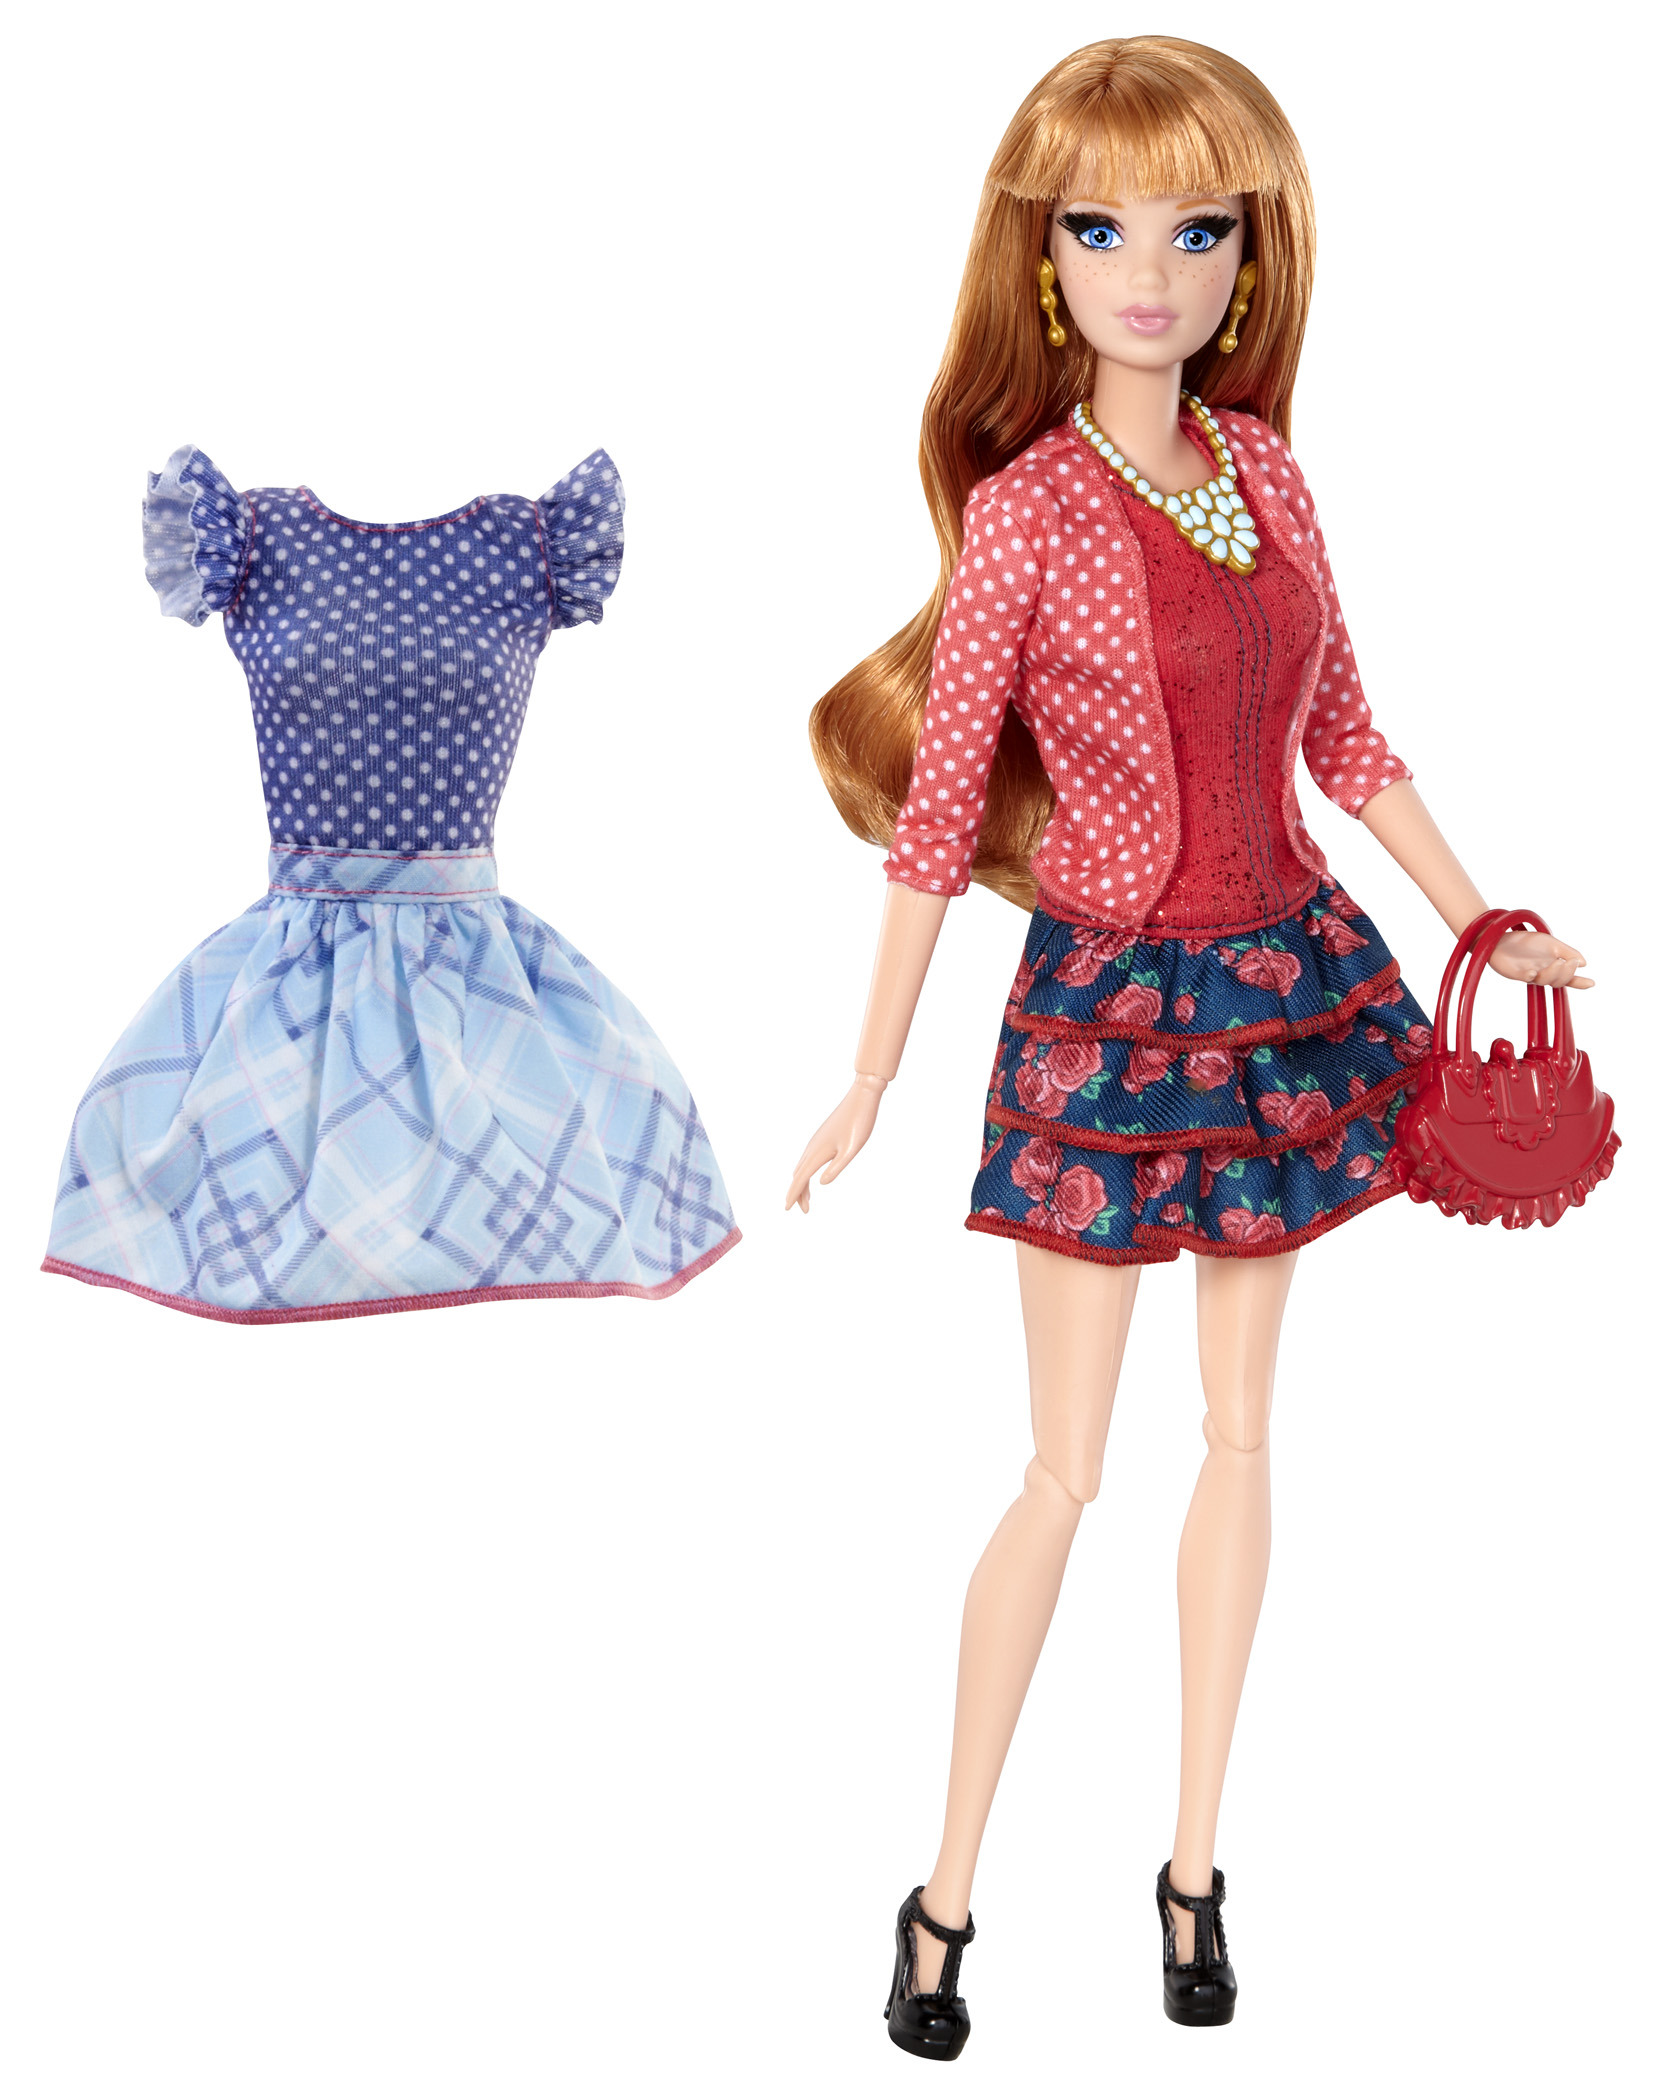 Best Barbie Dolls And Toys : Barbie what i m looking forward to confessions of